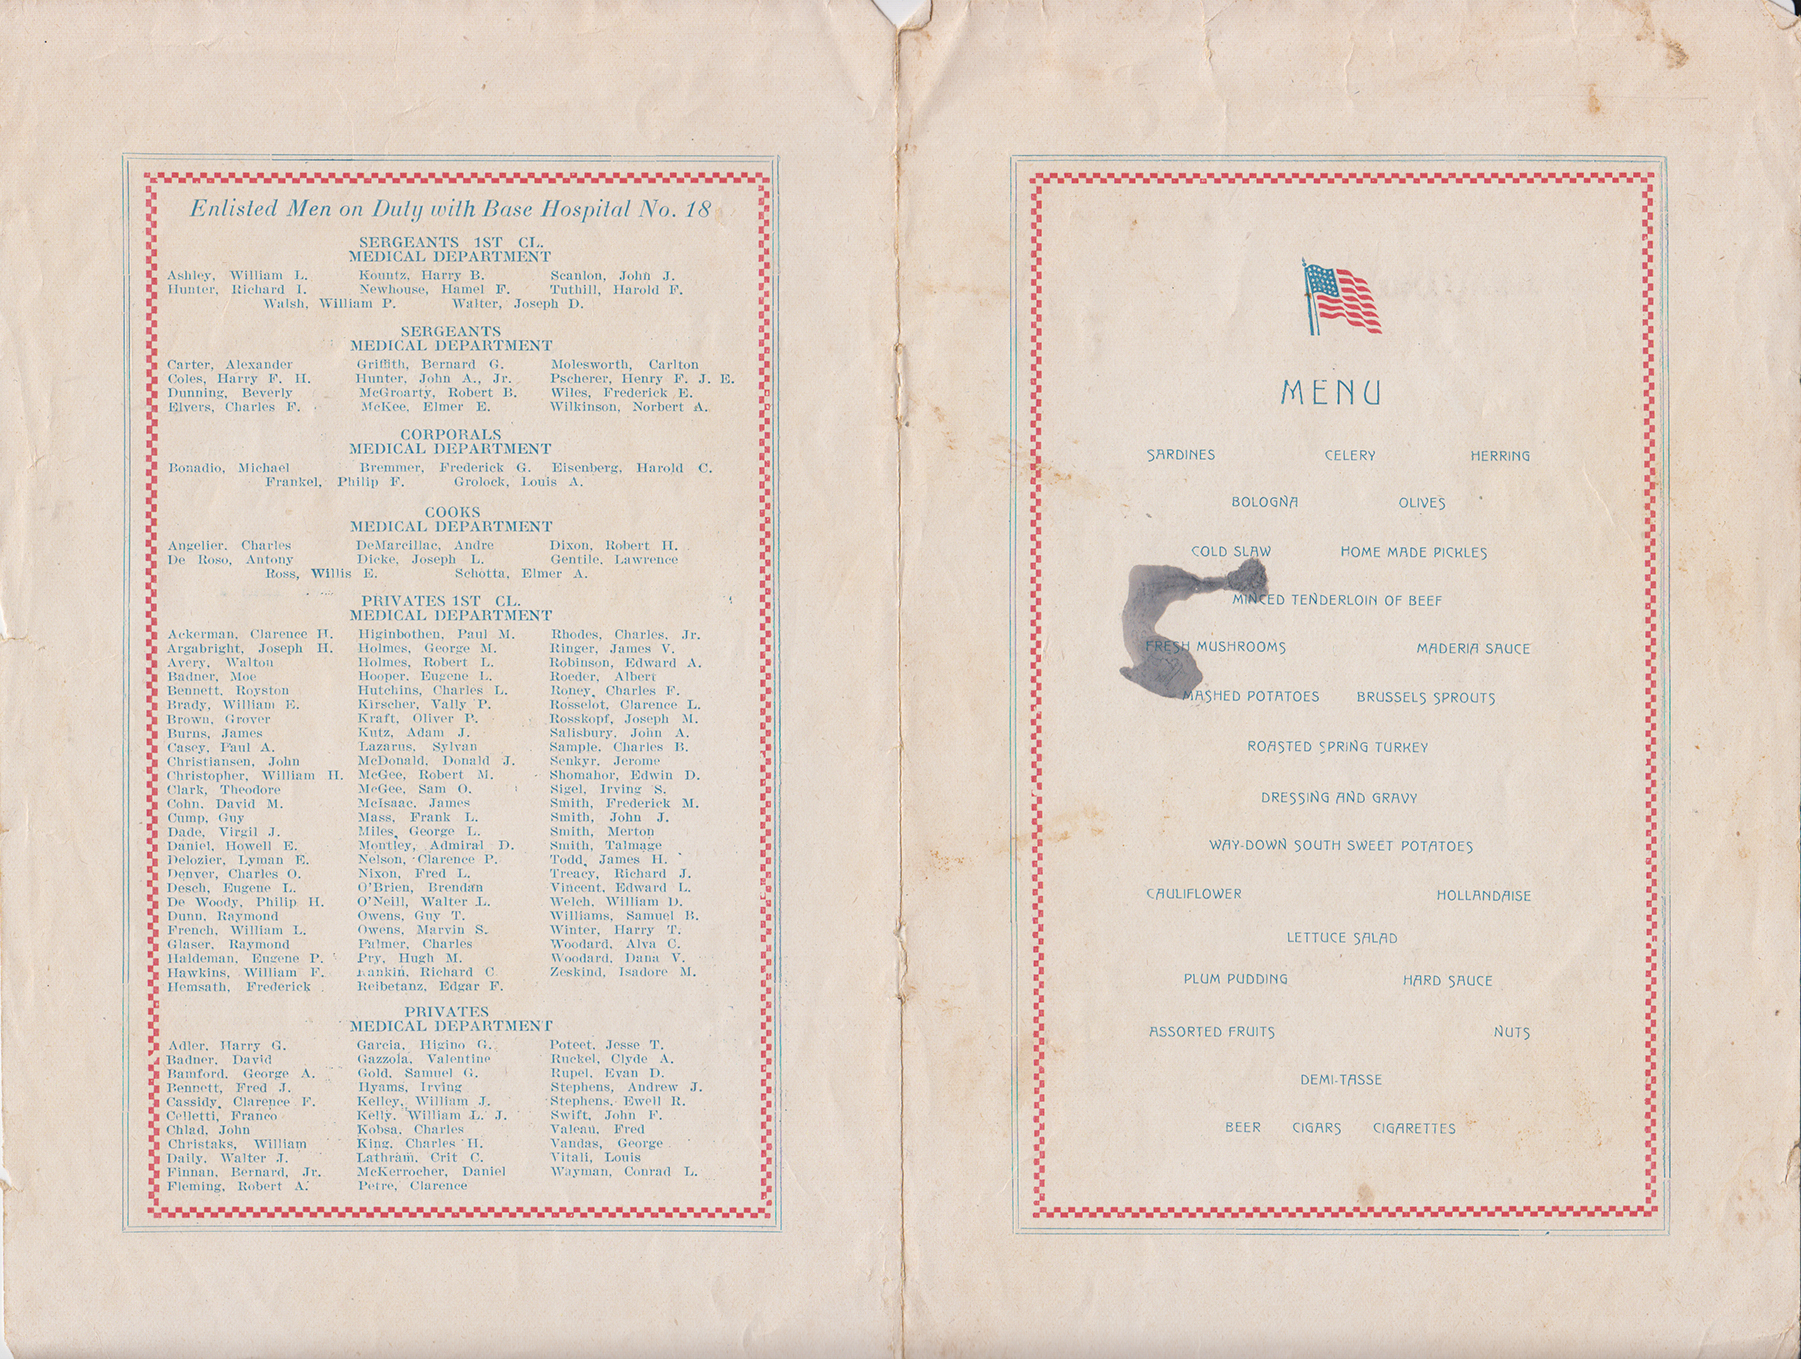 Base Hospital 18, Thanksgiving Dinner Menu, Nov. 18, 1918, personnel and food menu